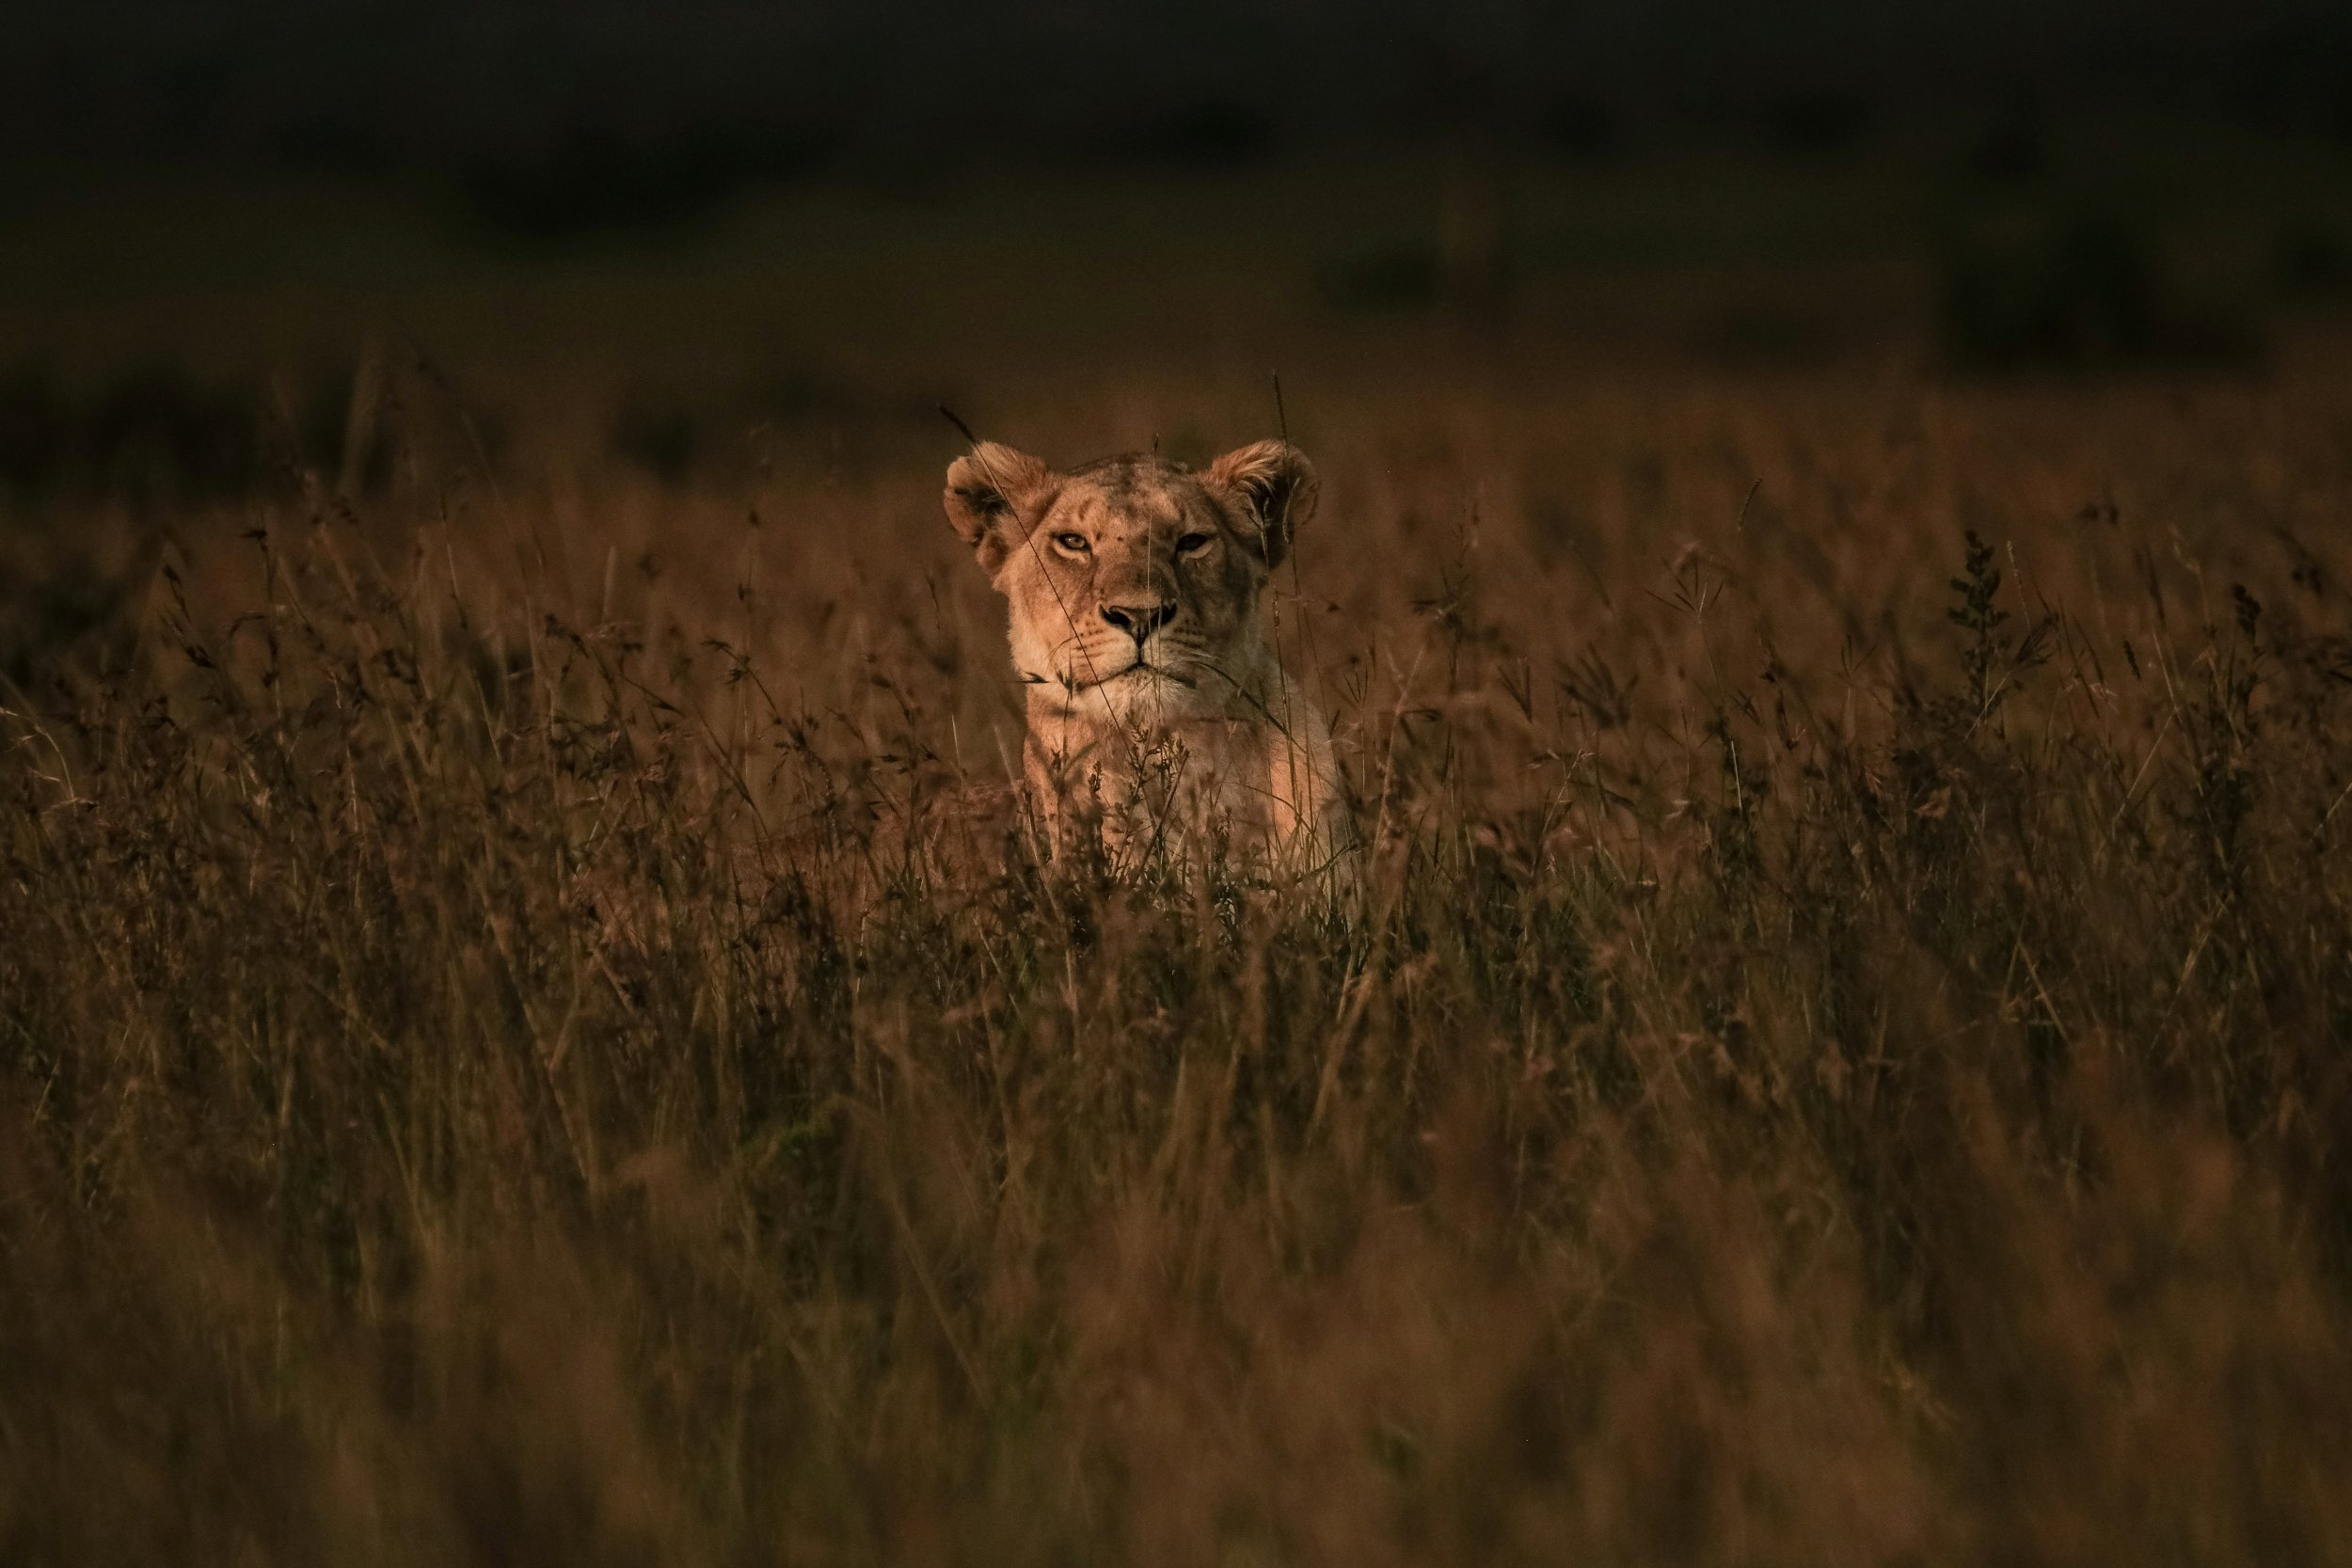 Lions Kill Poachers and Six Other Times Wild Animals